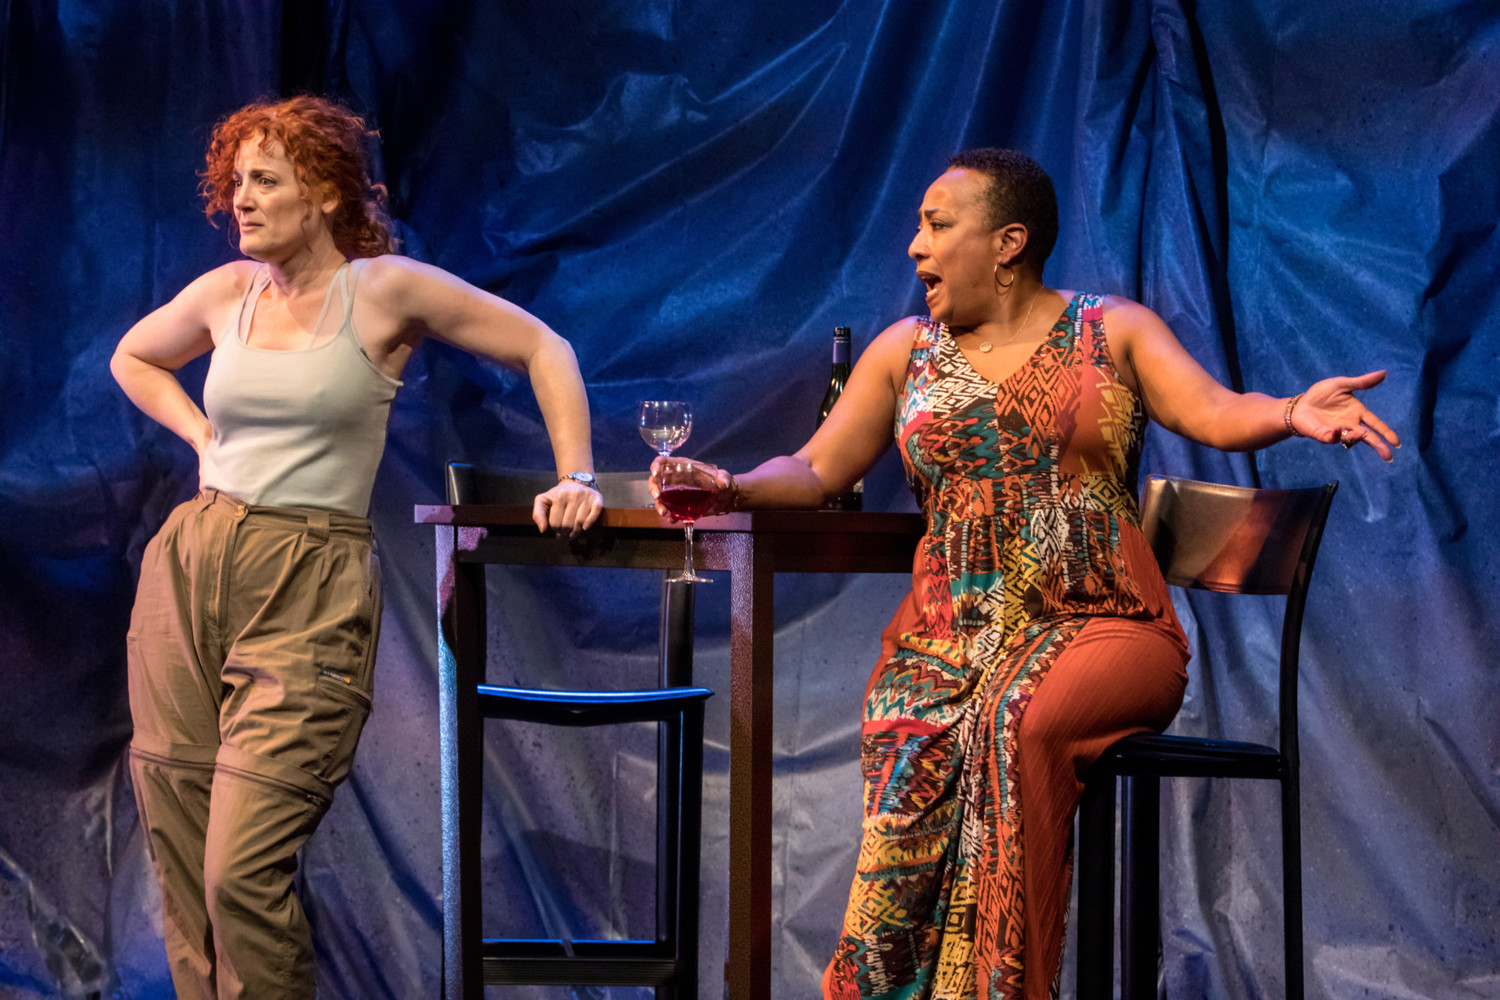 BWW Review: Prime Productions presents TWO DEGREES at Guthrie's Dowling Studio